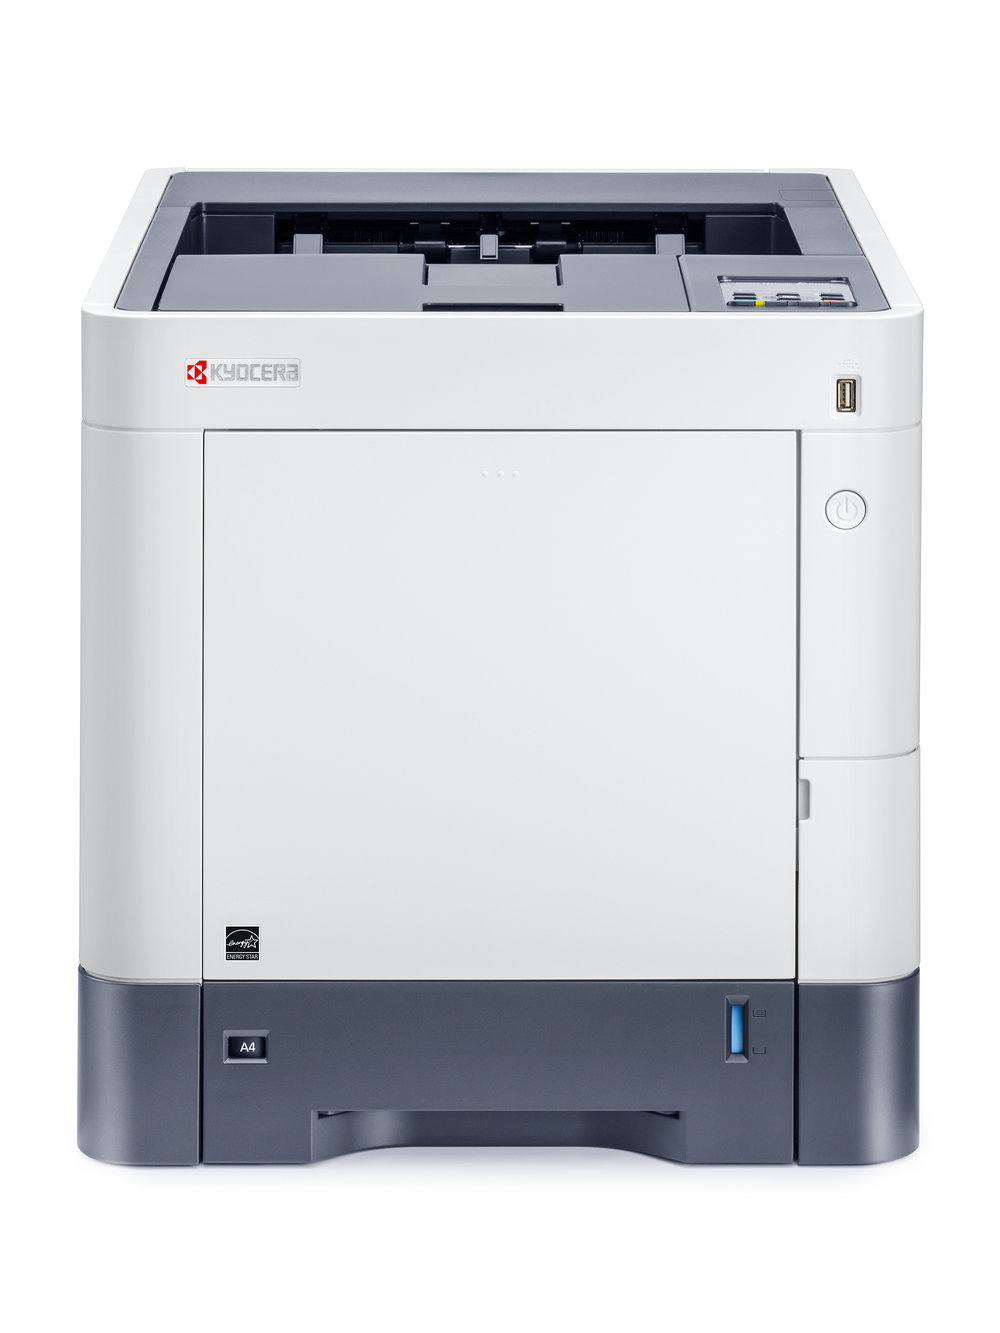 The Ecosys P6230cdn